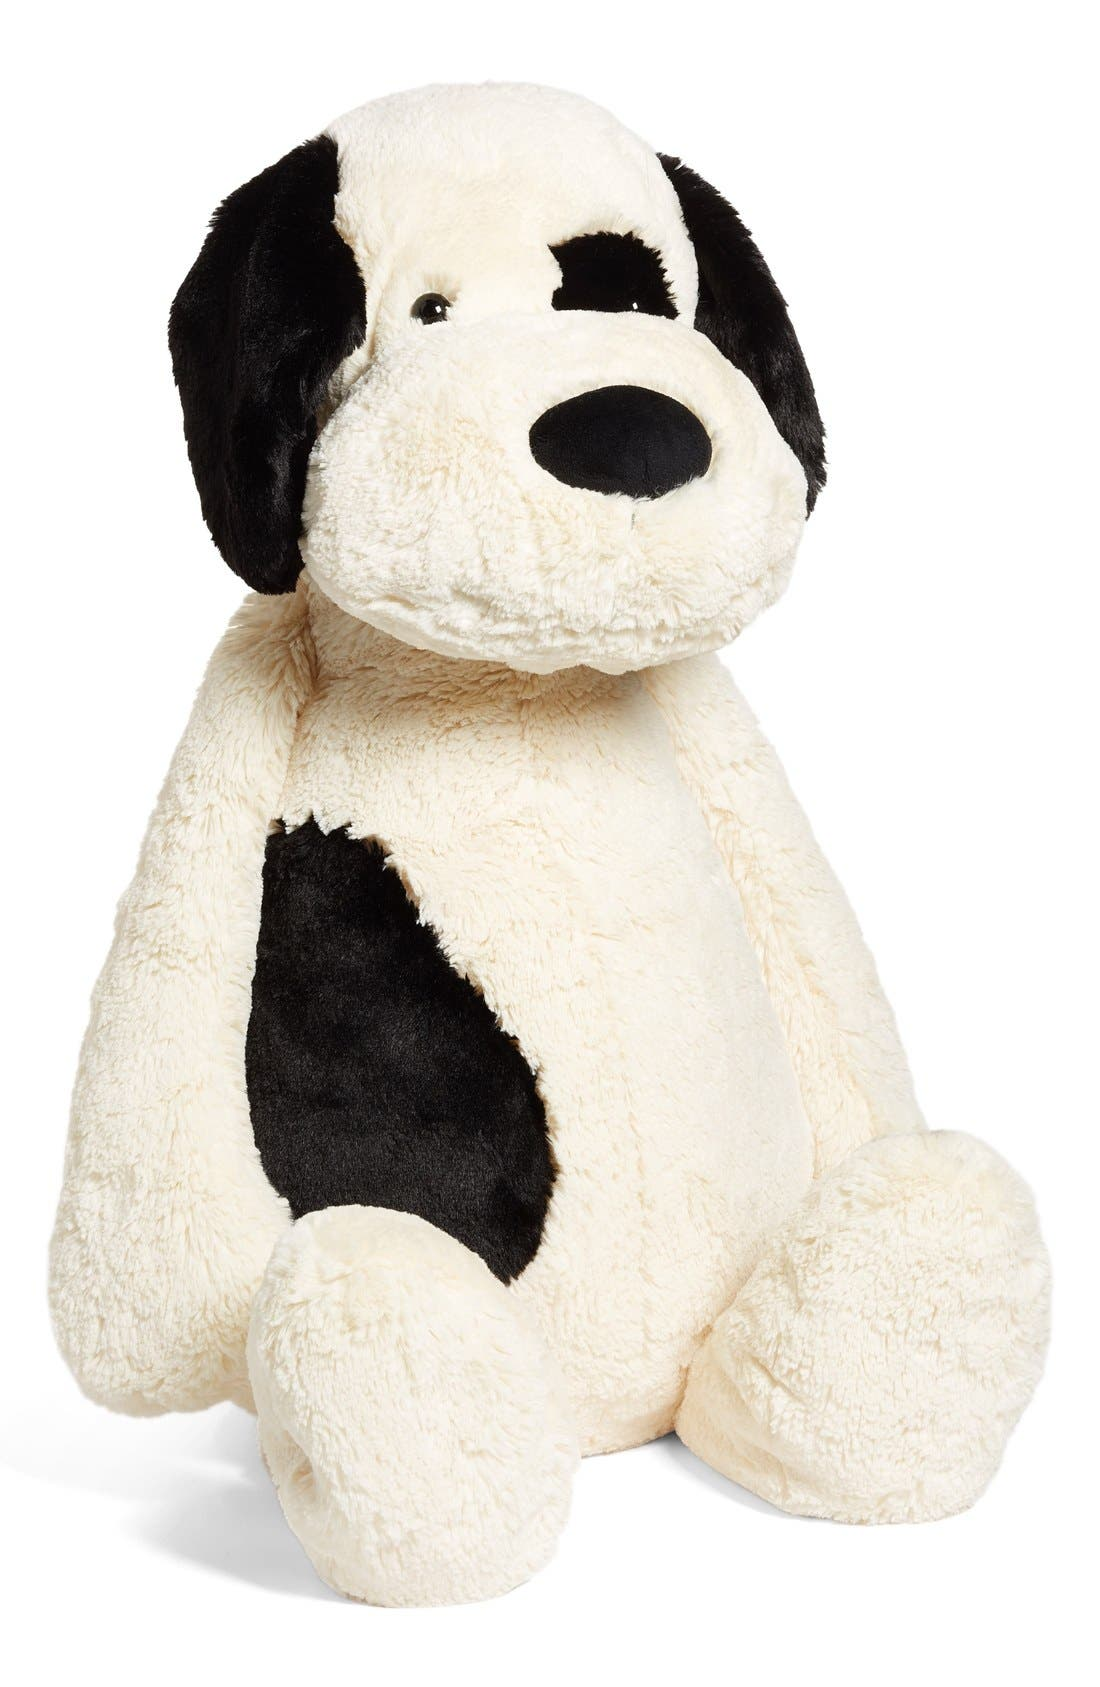 Alternate Image 1 Selected - Jellycat 'Really Big Bashful Puppy' Stuffed Animal